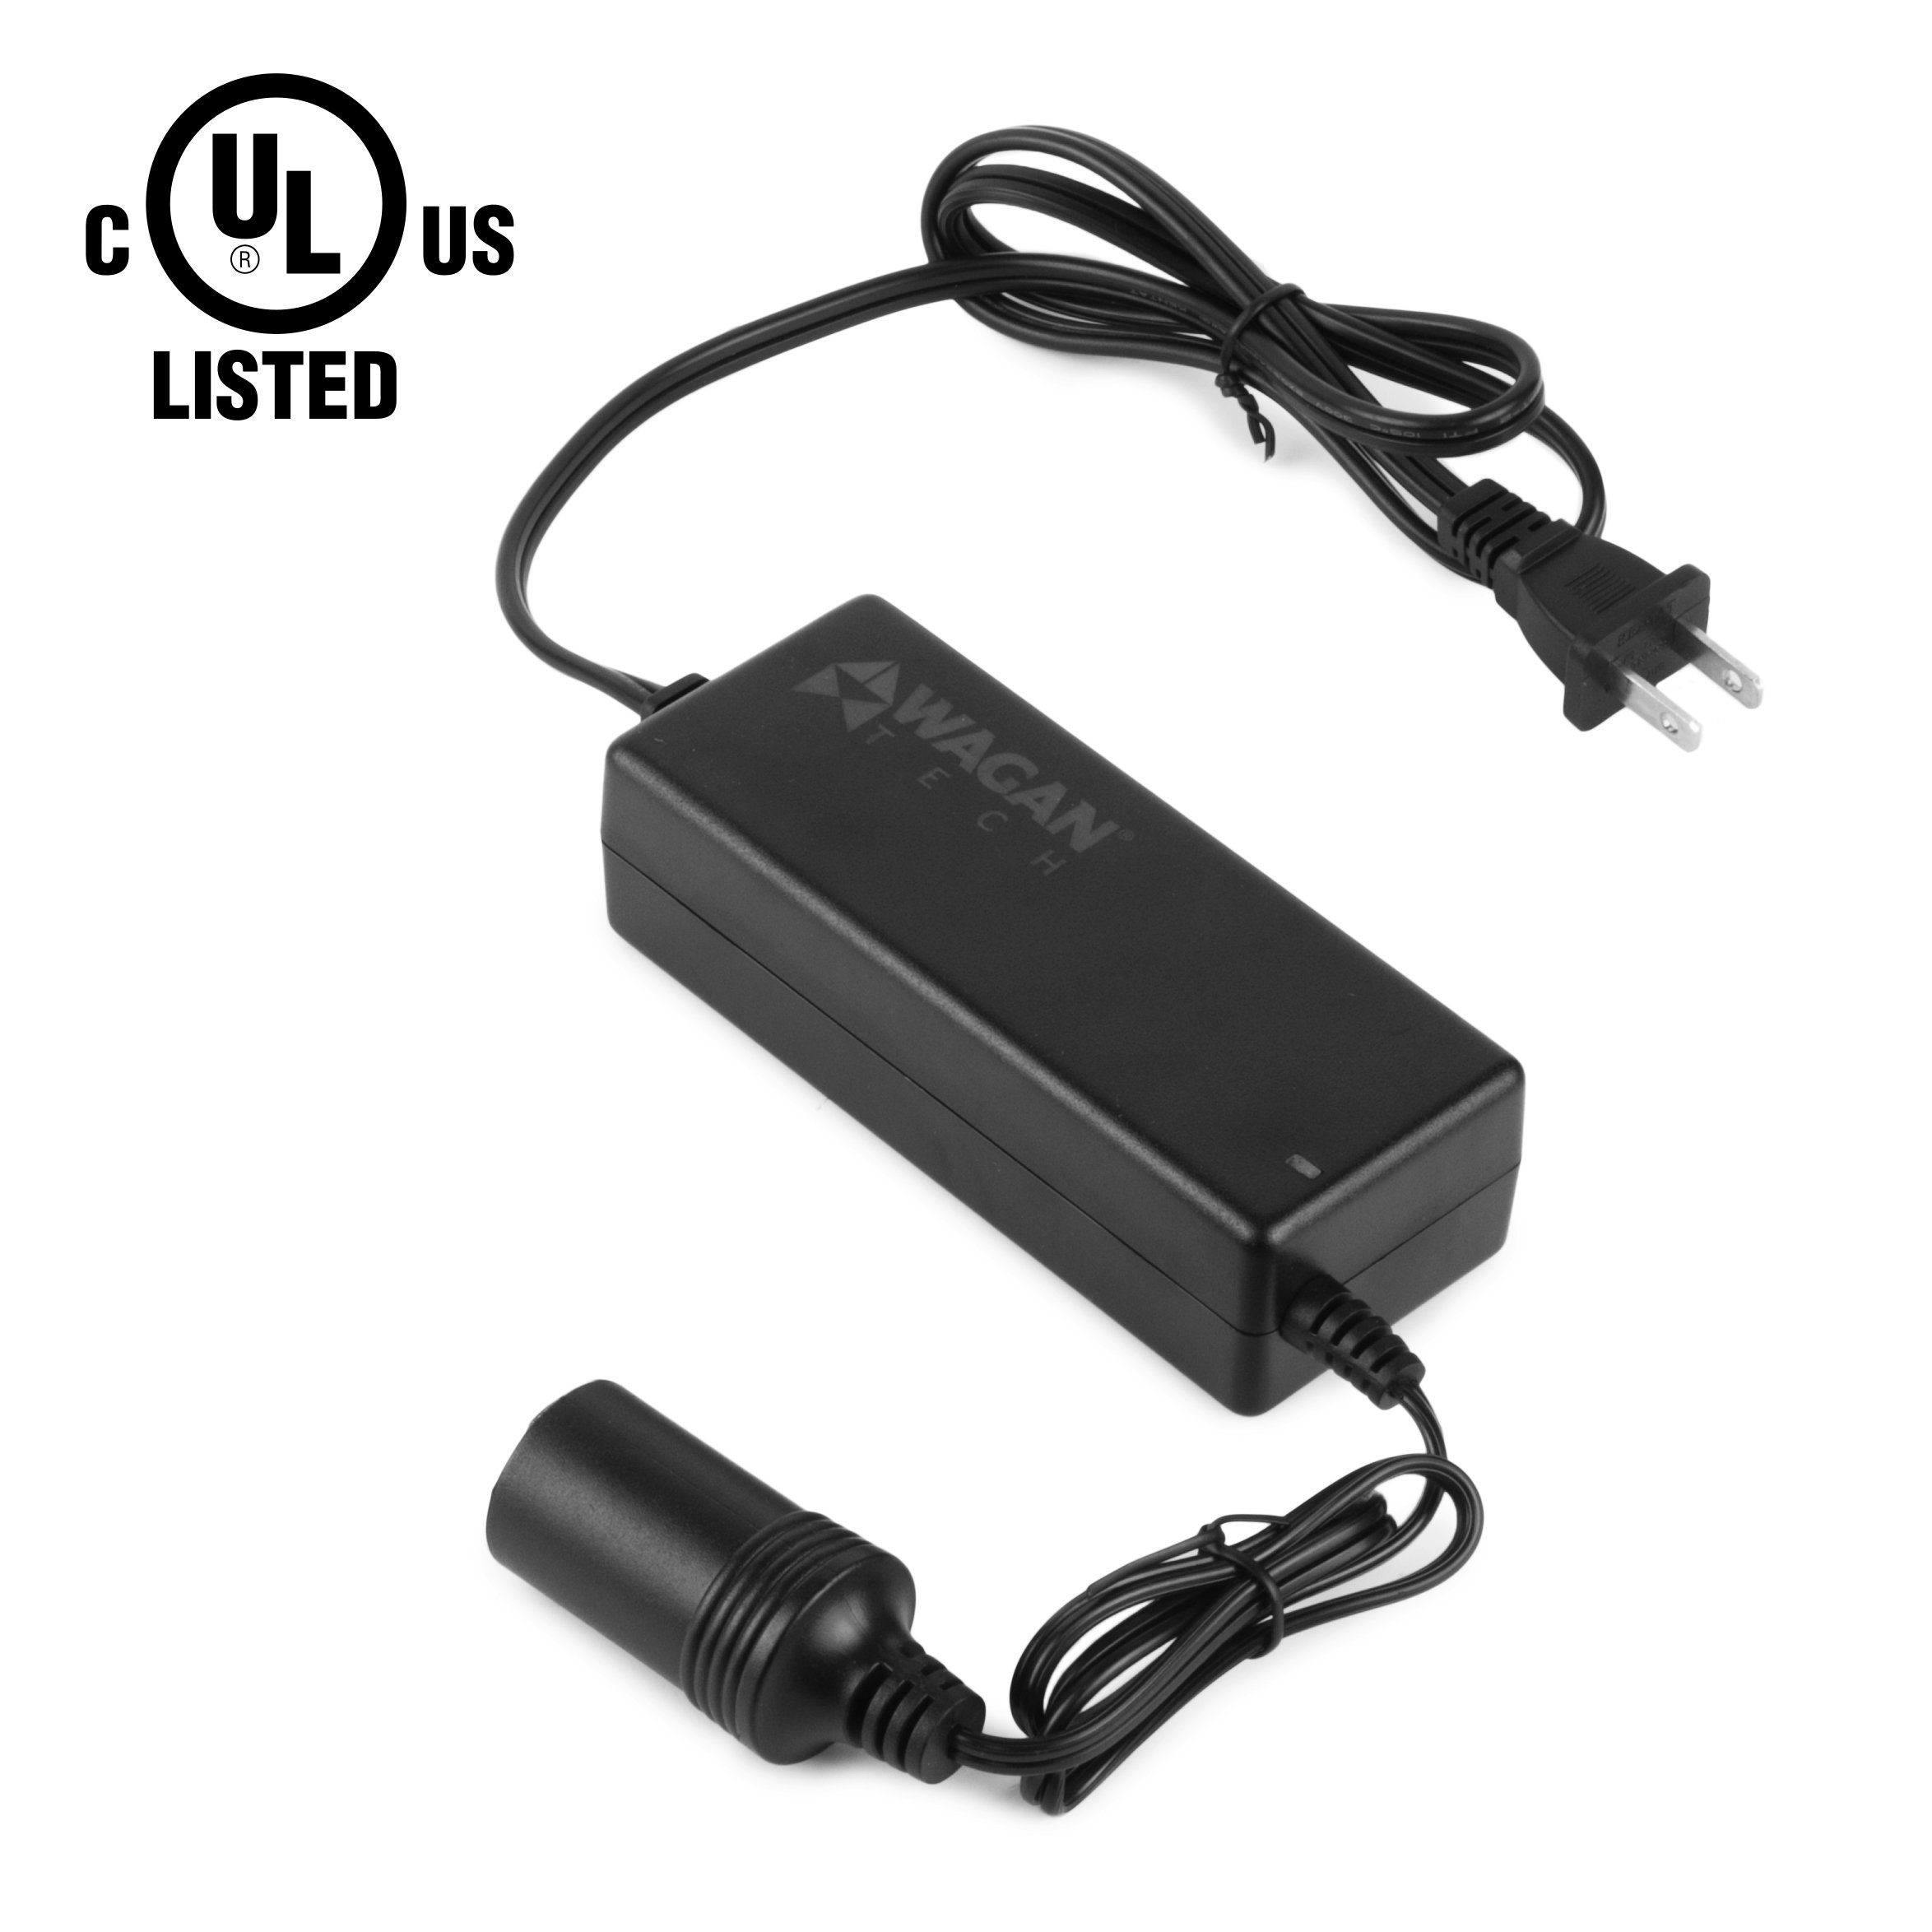 Wagan EL9903 - 5 amp AC to DC Power Adapter, 5A Power Converter, Converts 110V AC to 12V DC, Car Cigarette Ligher Socket, UL listed